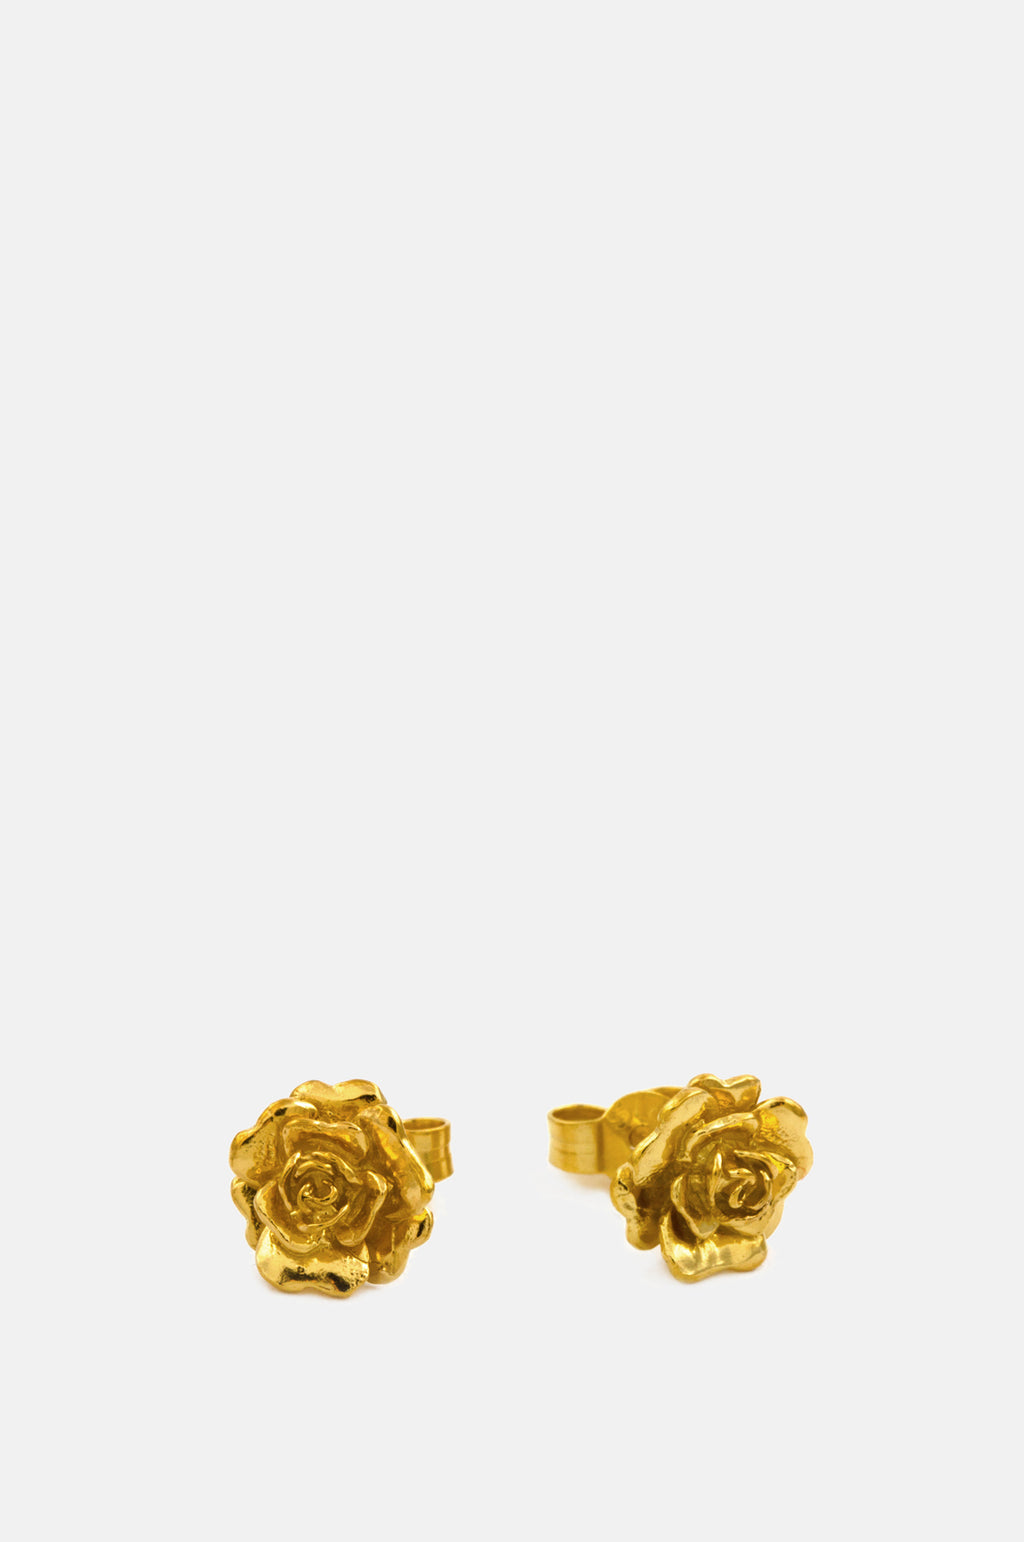 Rosa Damasca Stud Earrings Gold Plate